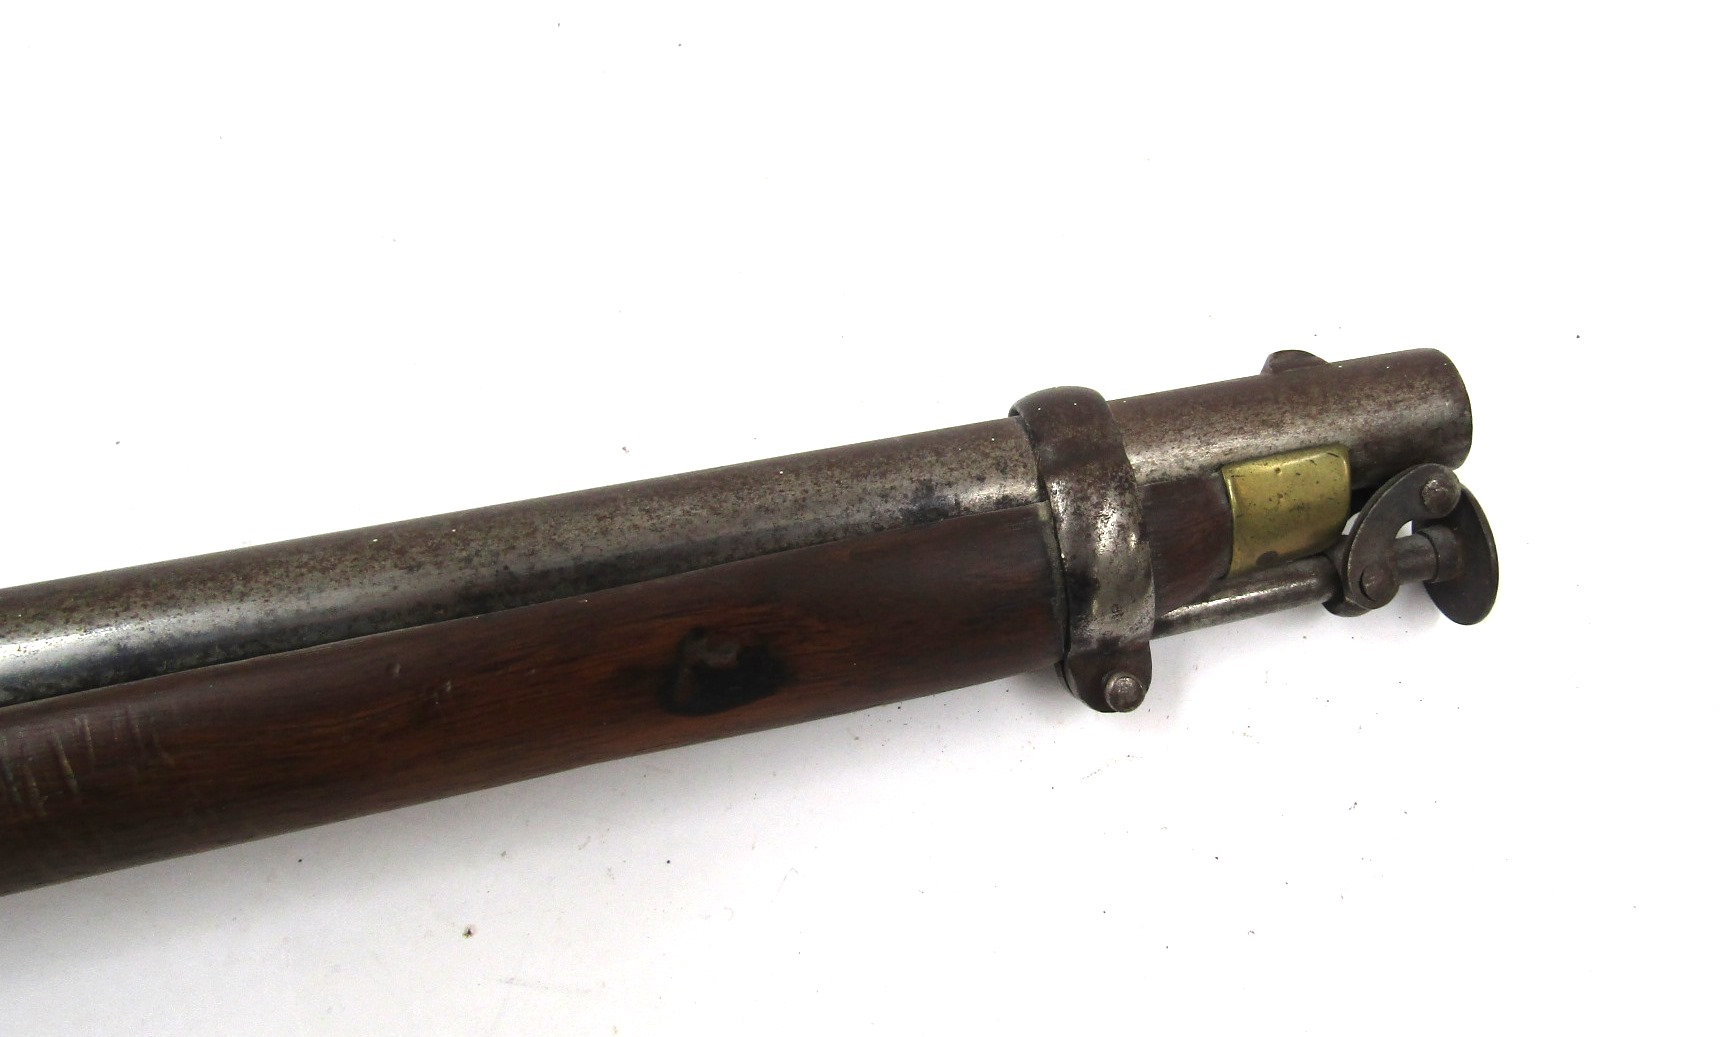 A Victorian East India percussion cavalry carbine, - Image 3 of 5